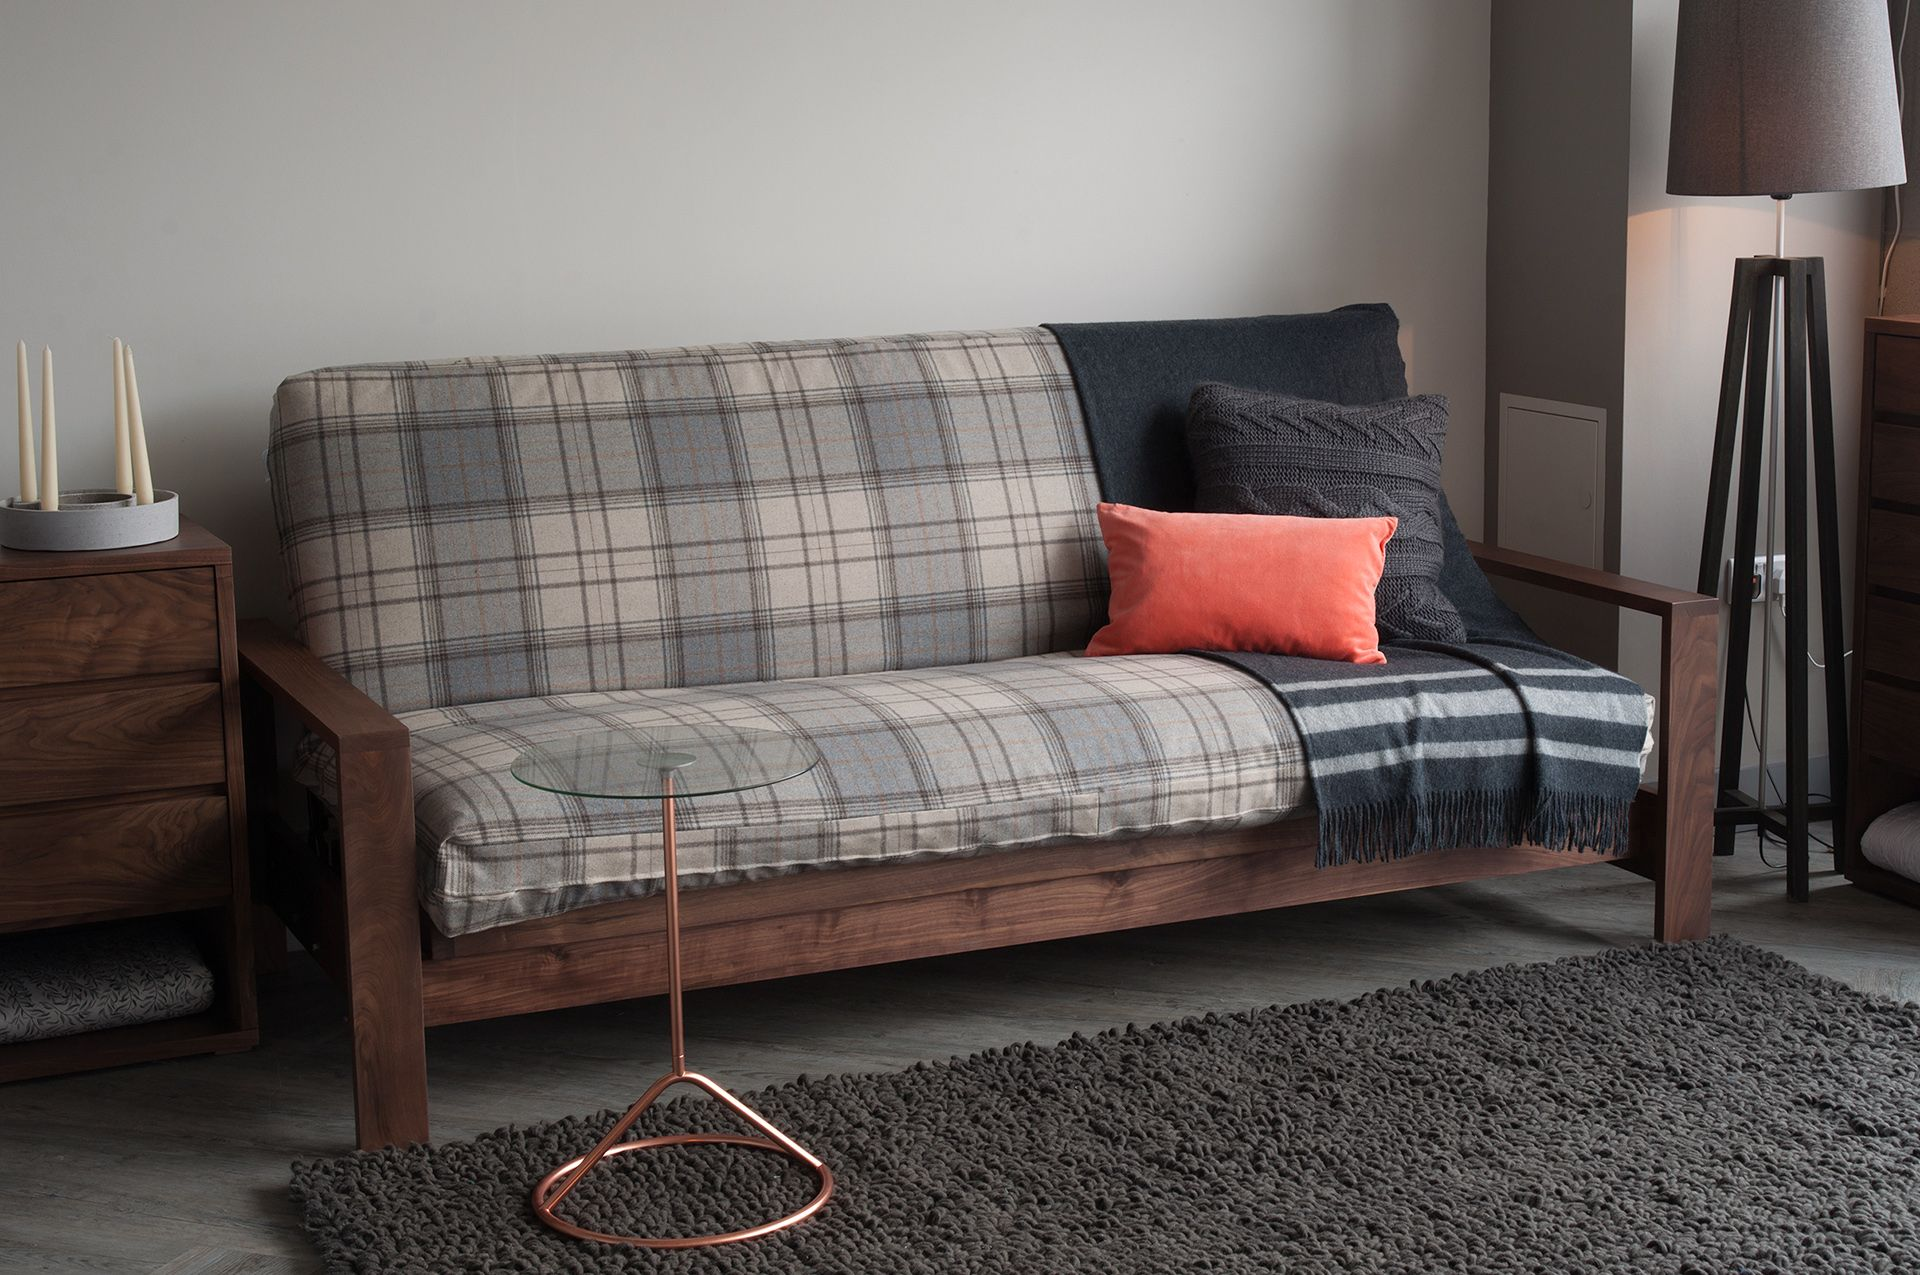 Quality Sofa Bed Uk Dacron Cushions Cuba Is A High Futon The Solid Hardwood